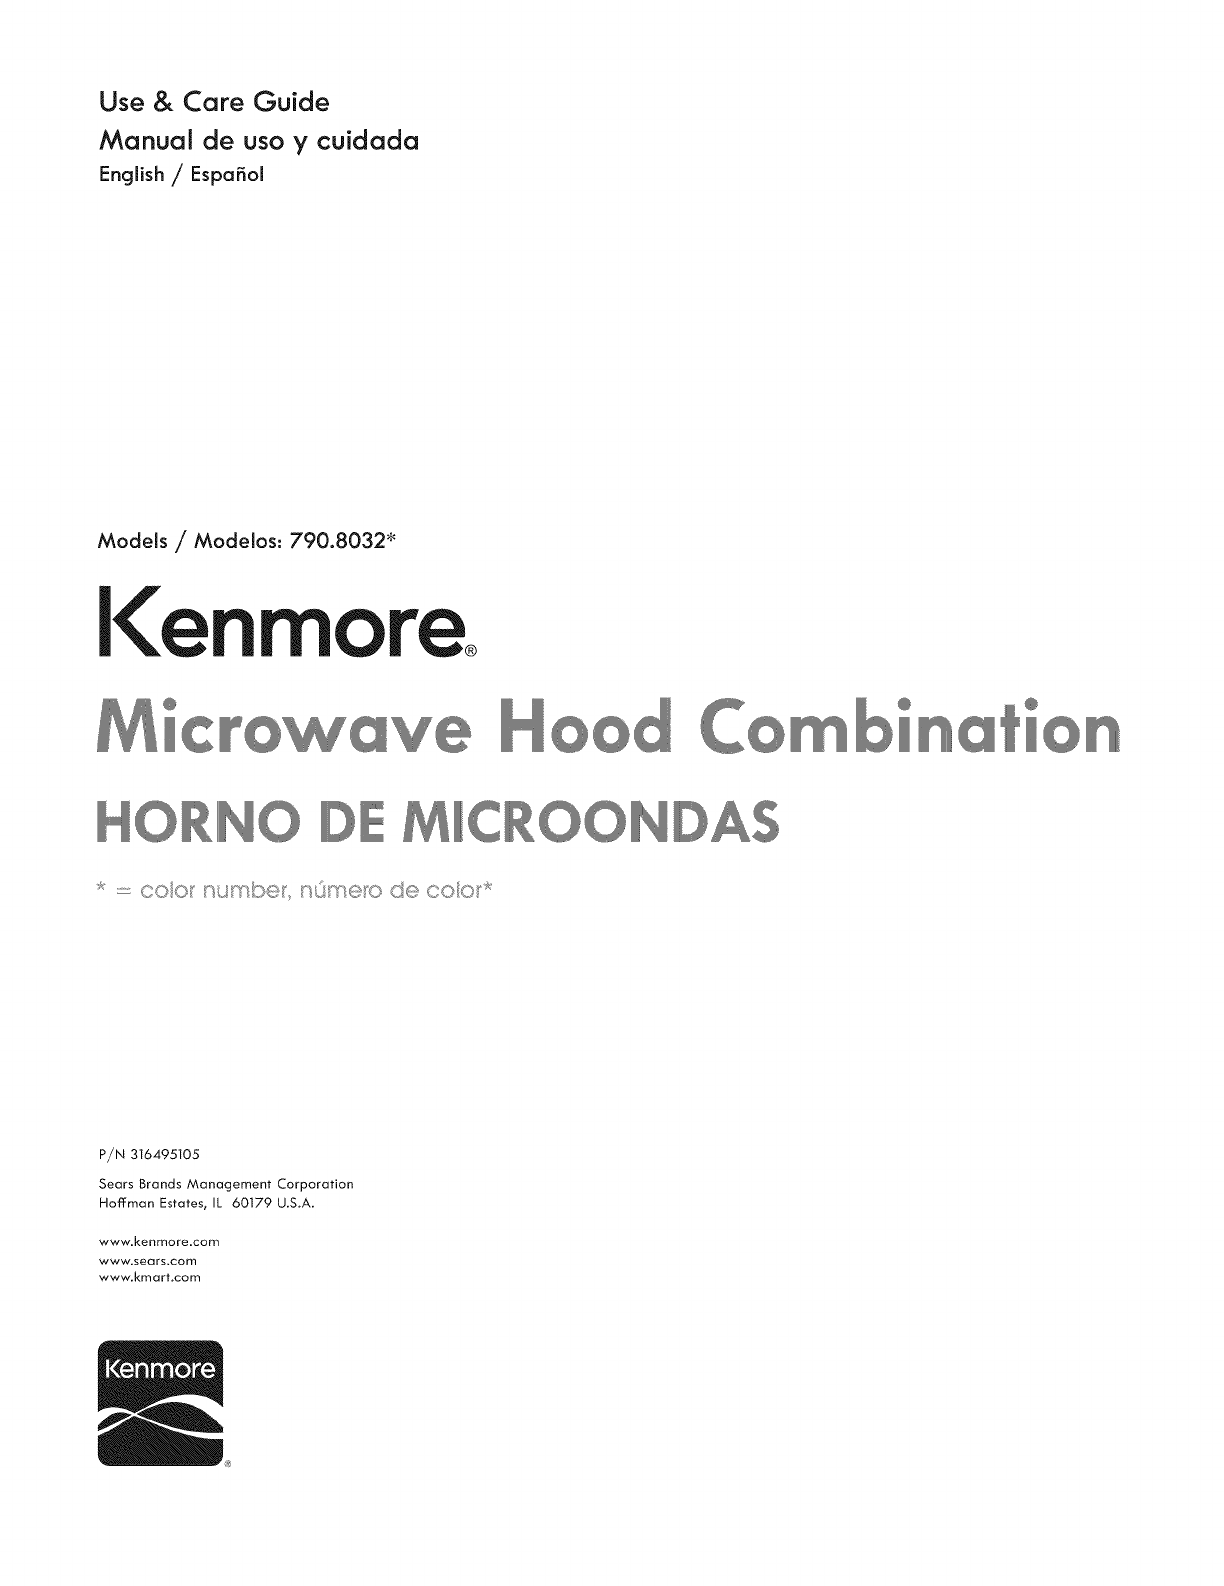 Kenmore 79080322310 User Manual Microwave Oven Manuals And Guides 1308187l